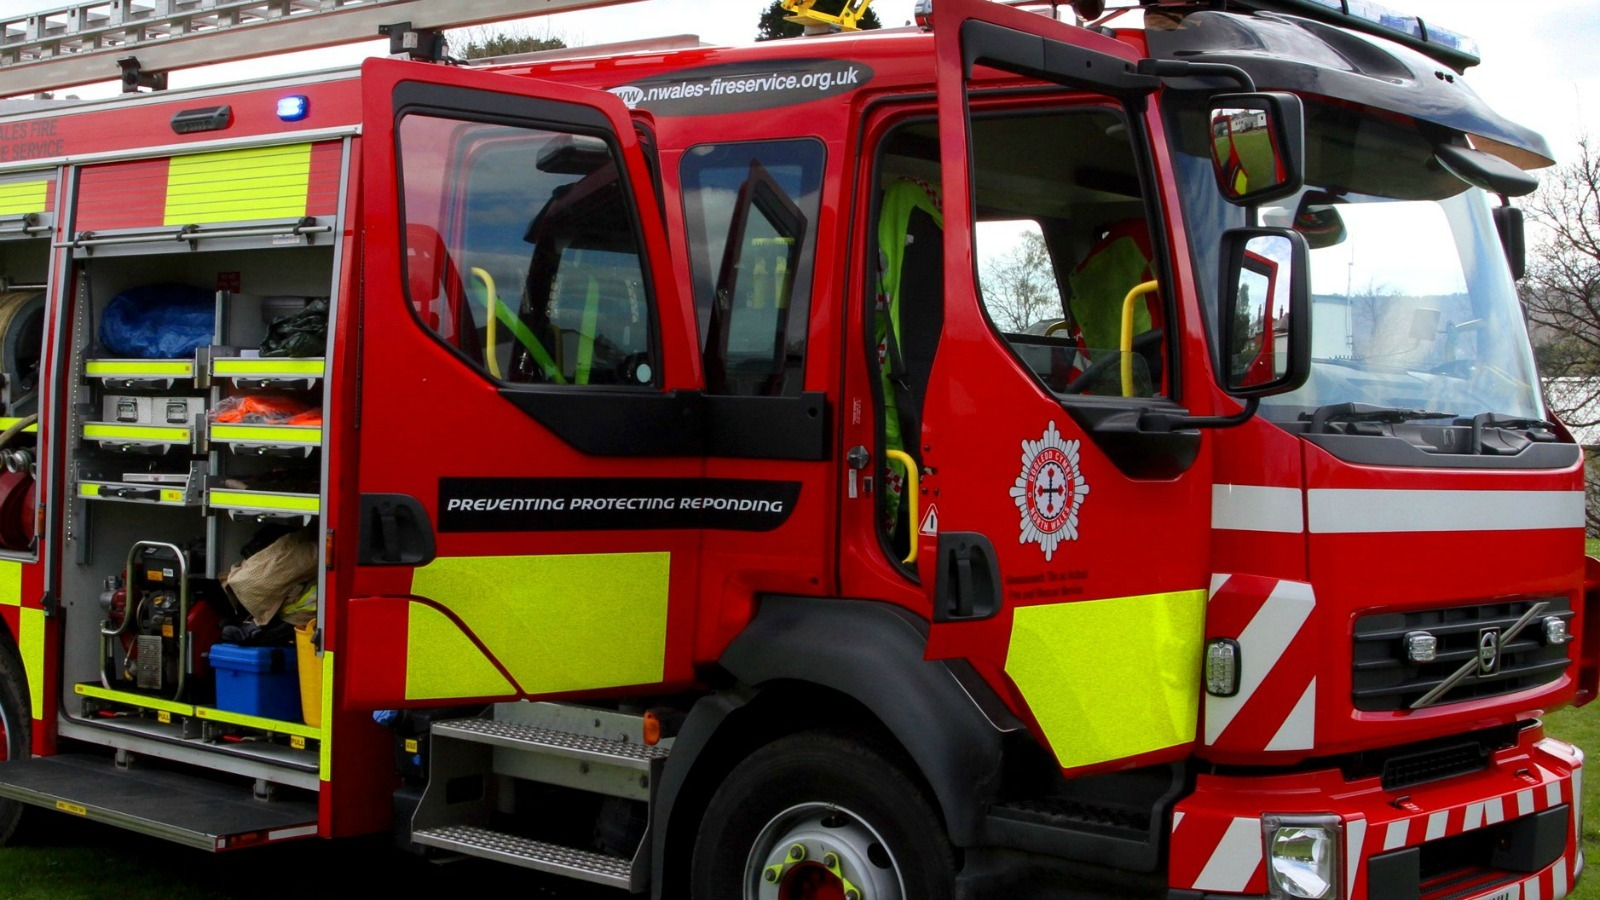 North Wales Fire and Rescue attended the incident